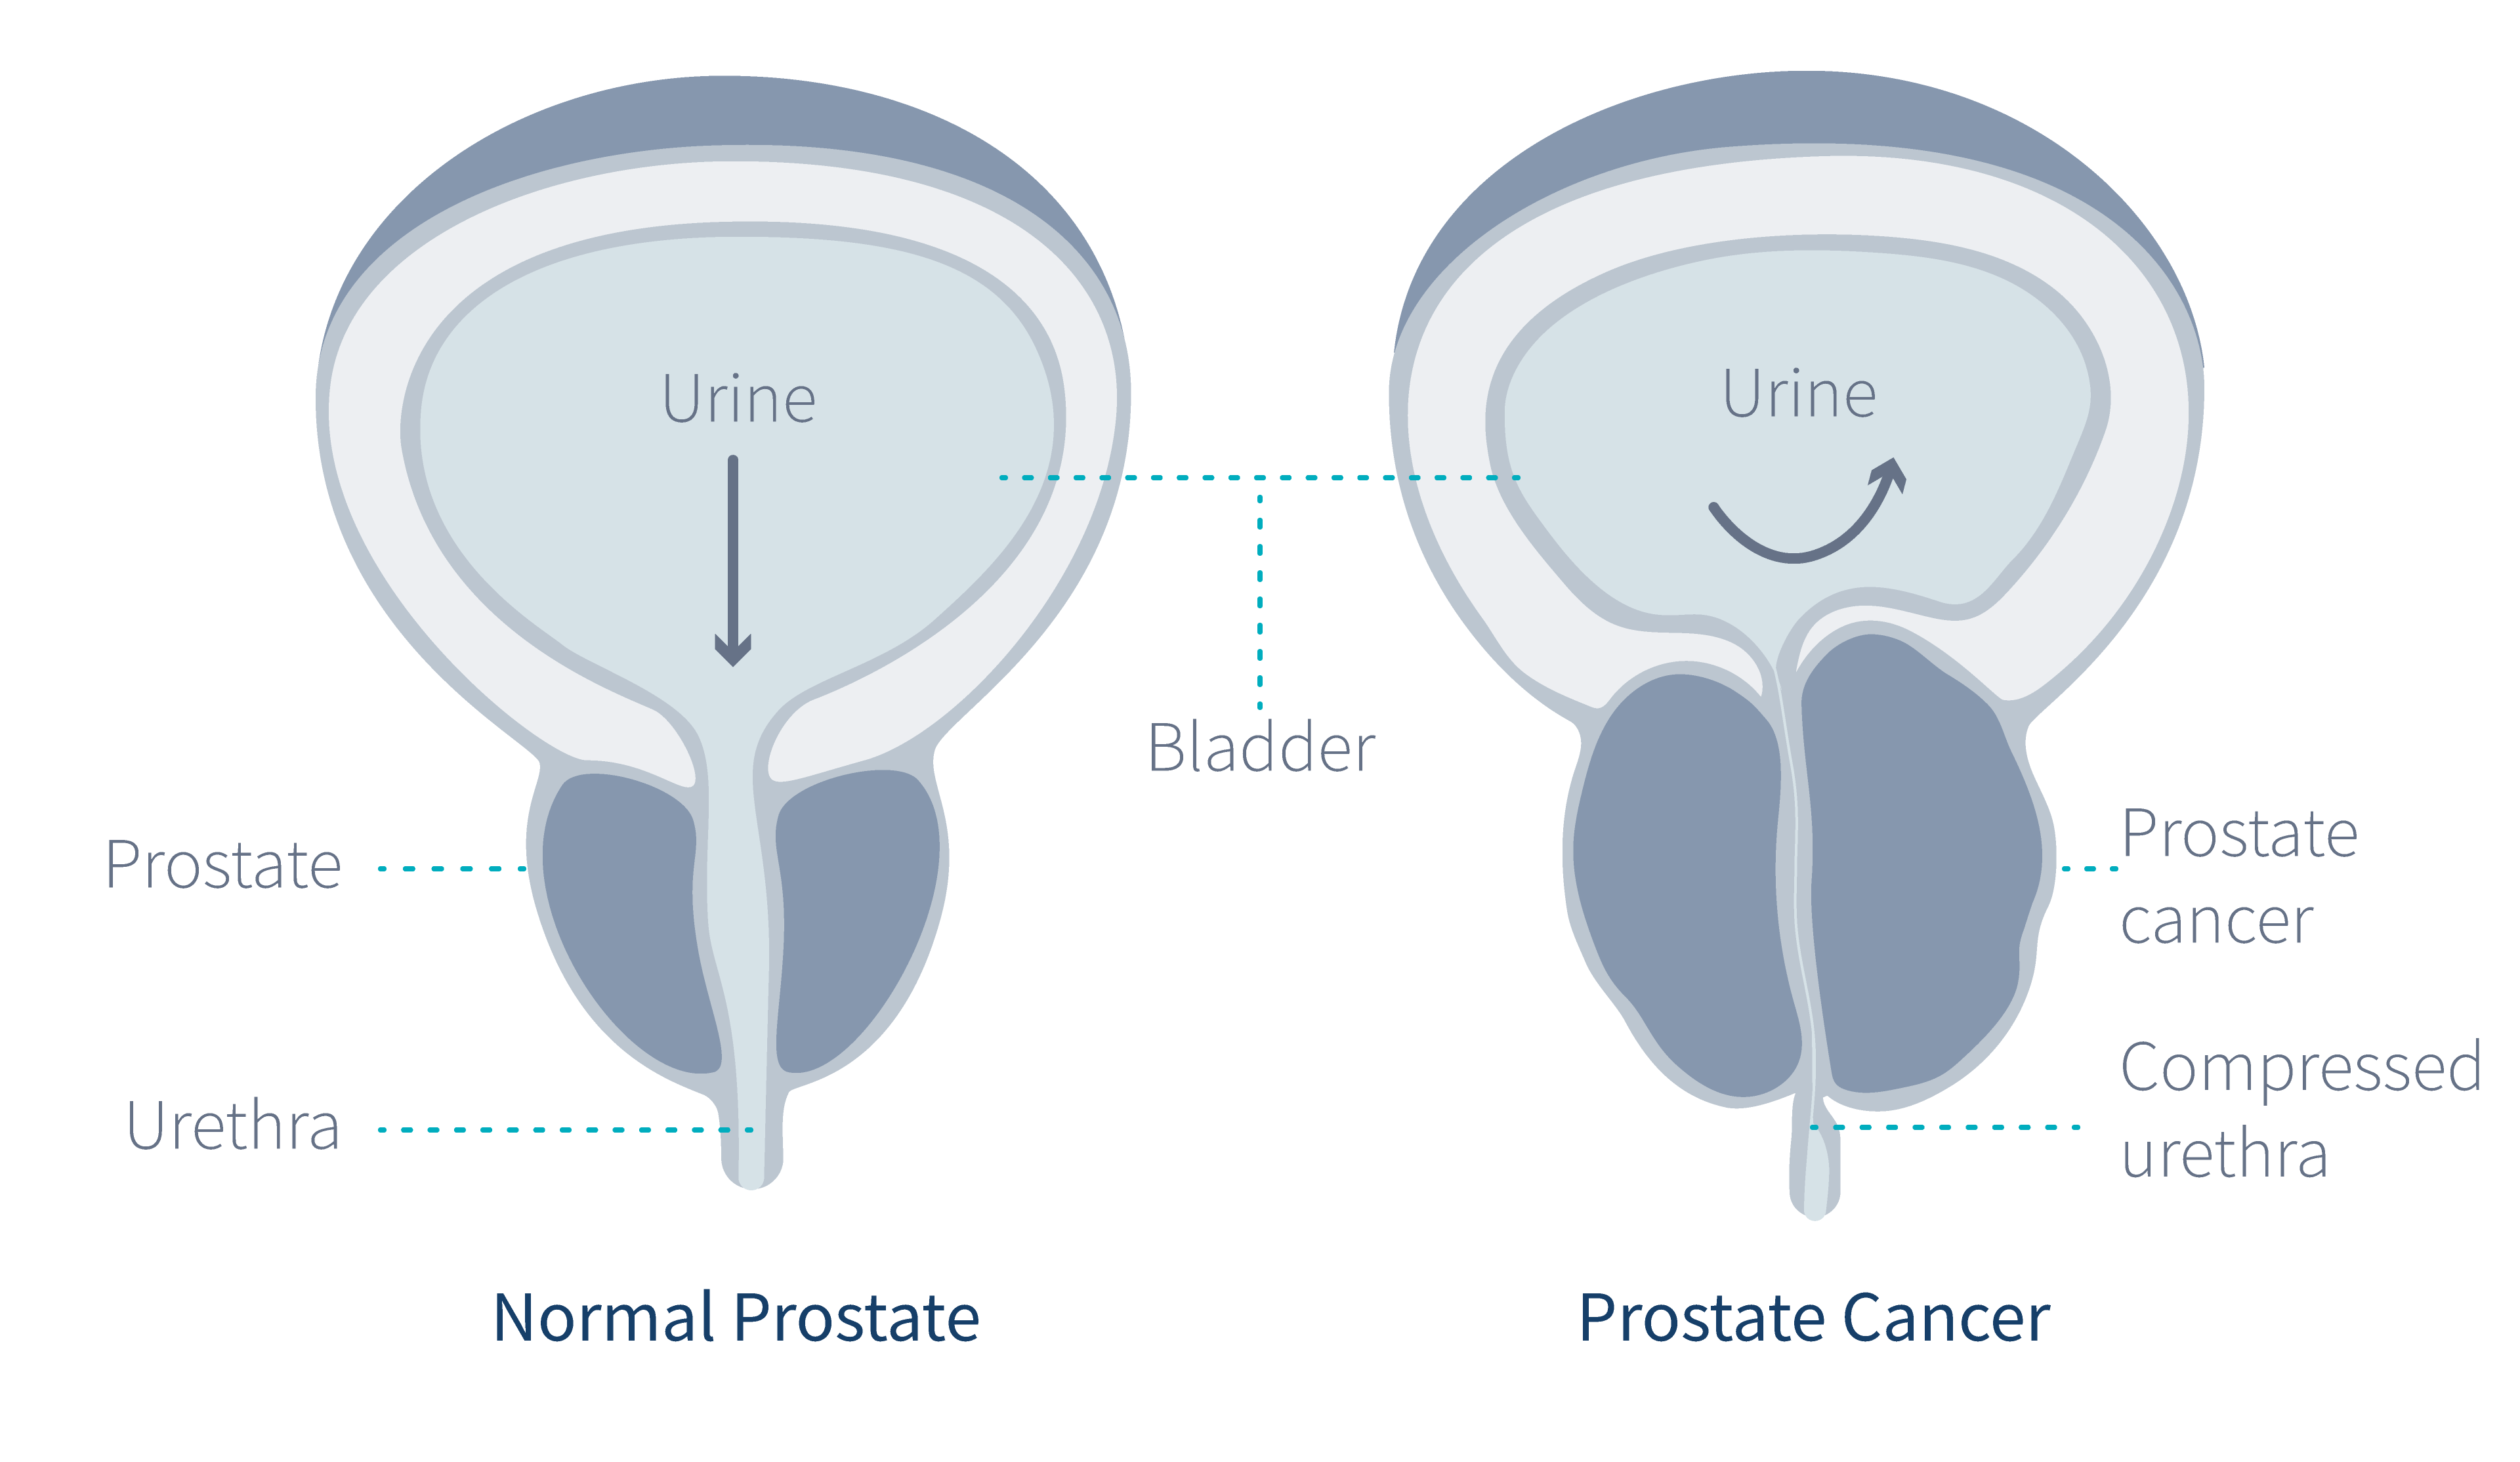 cancer-in-the-prostate-gland-diagram-